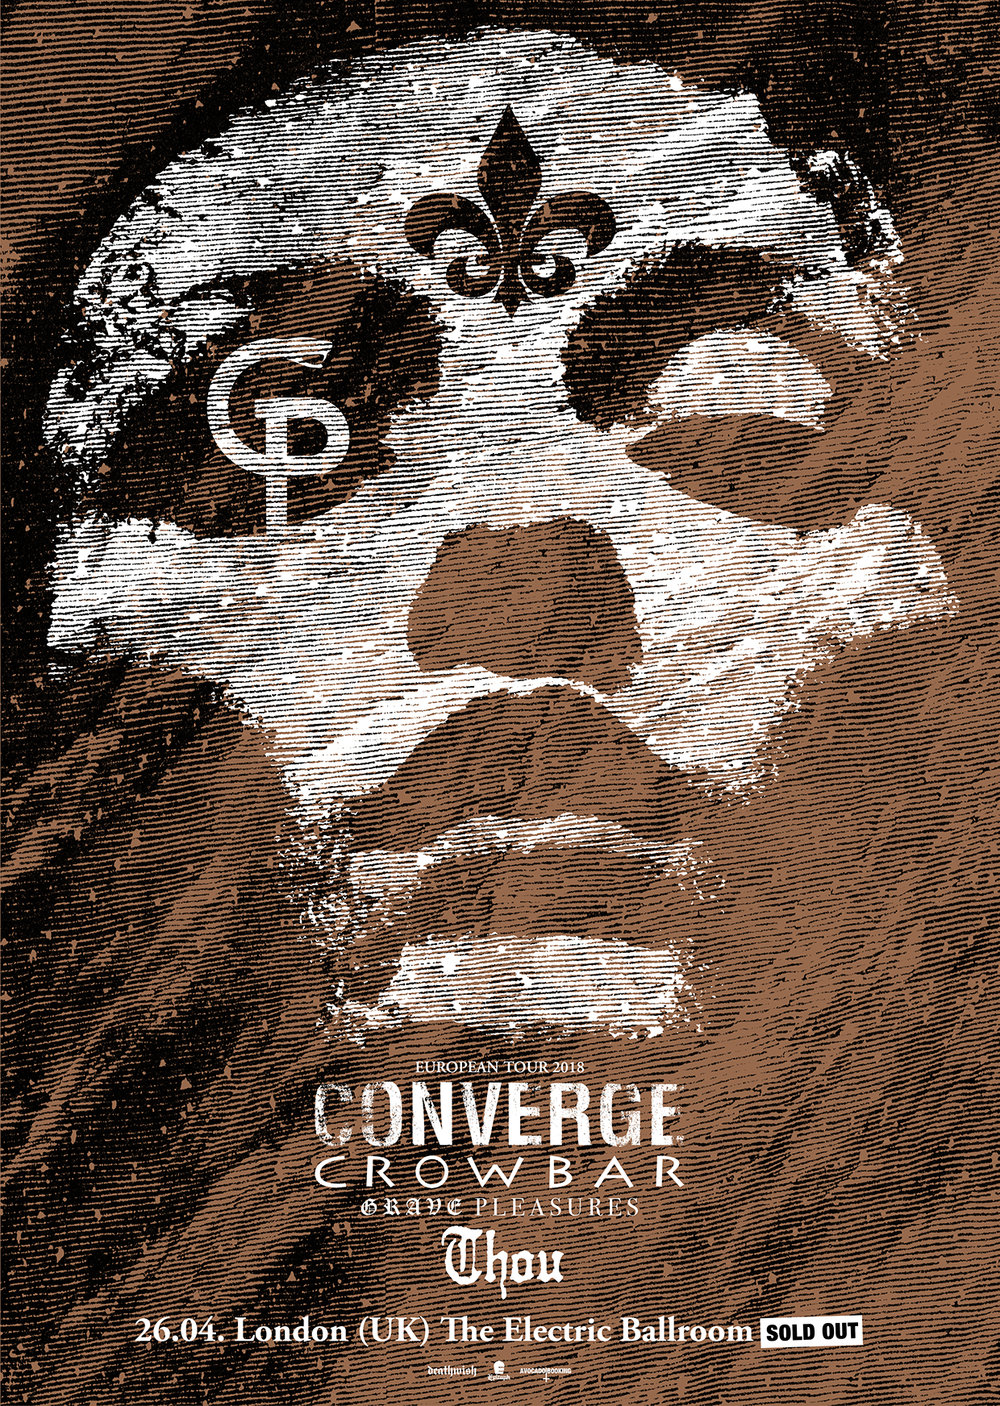 converge.crowbar 2018 SOLD-OUT poster.jpg